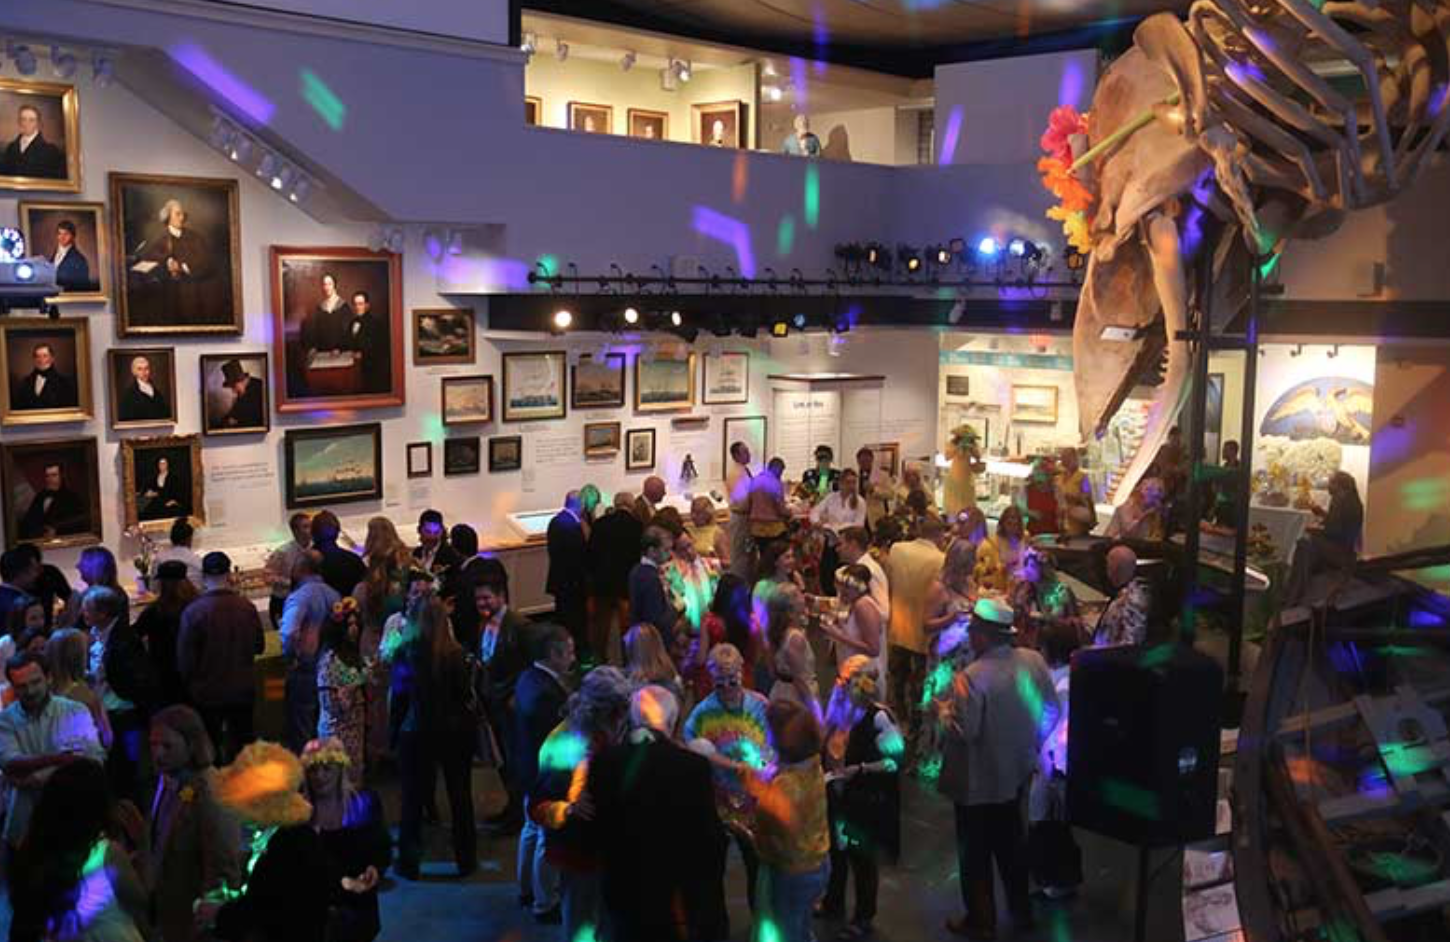 New York Social Diary, Night at the Museum, Nantucket,  Article by Hilary Dick and Karen Klopp.